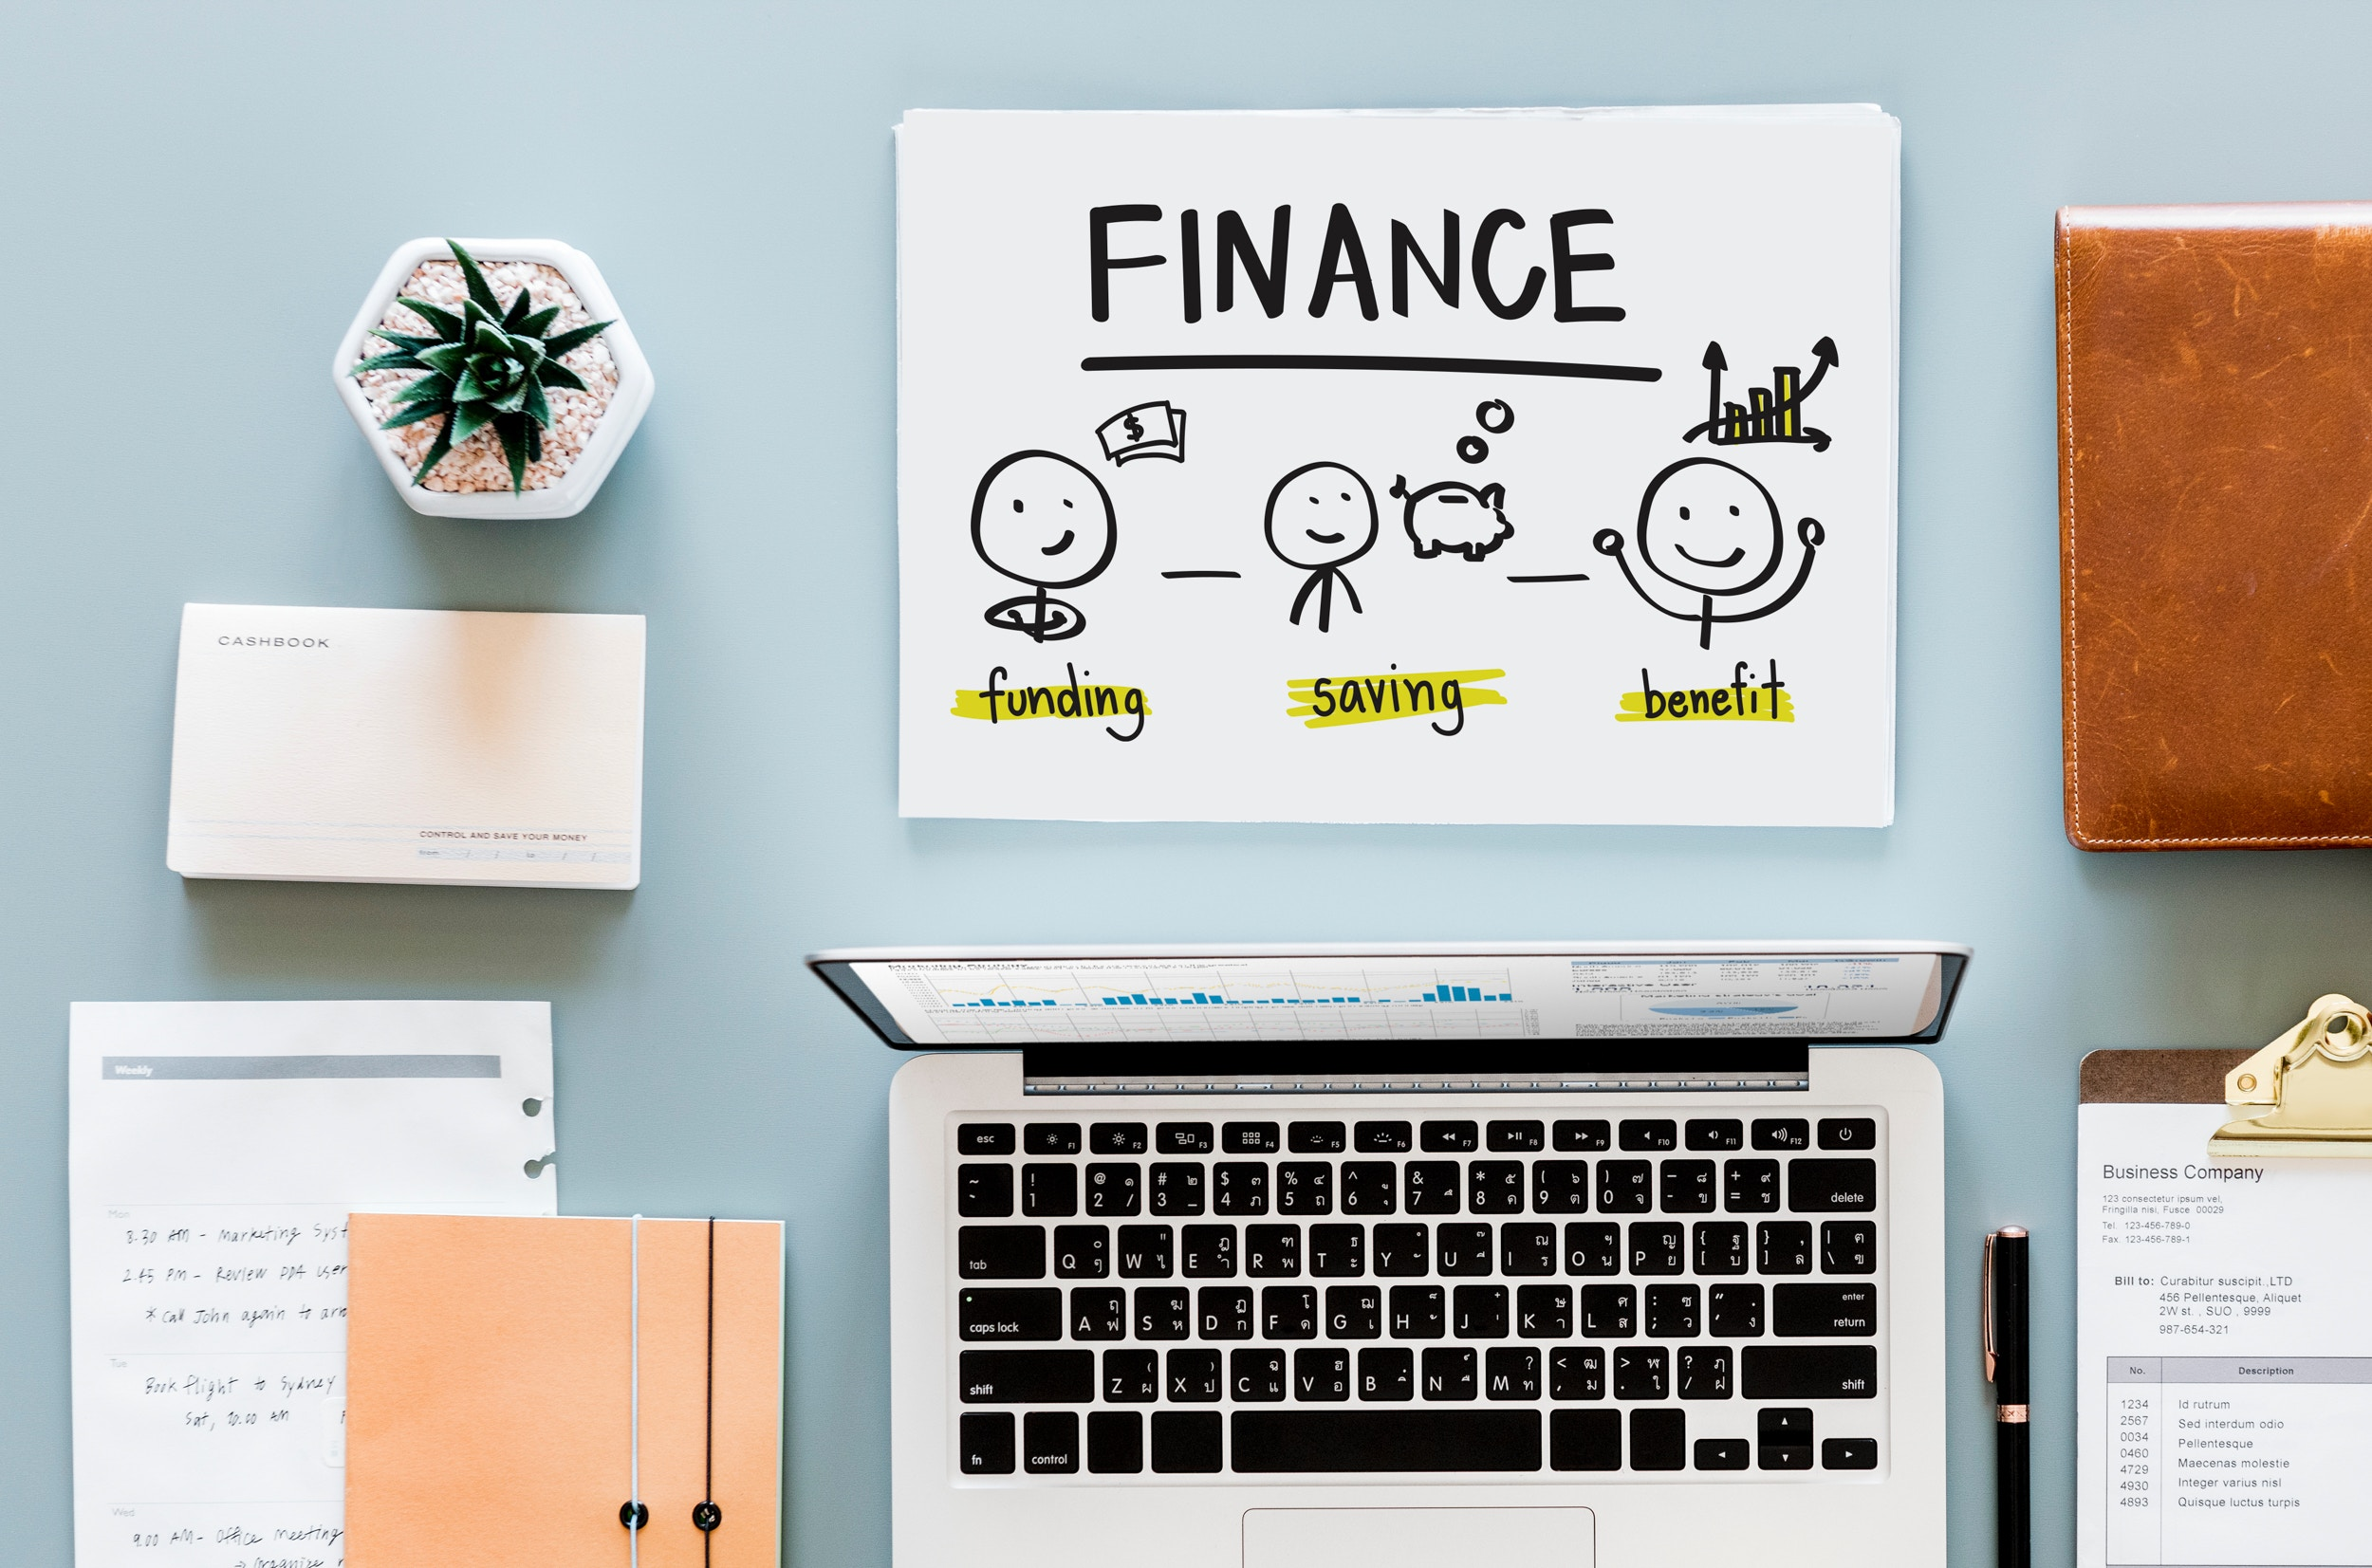 Quanto vale la Customer Experience nel Finance?